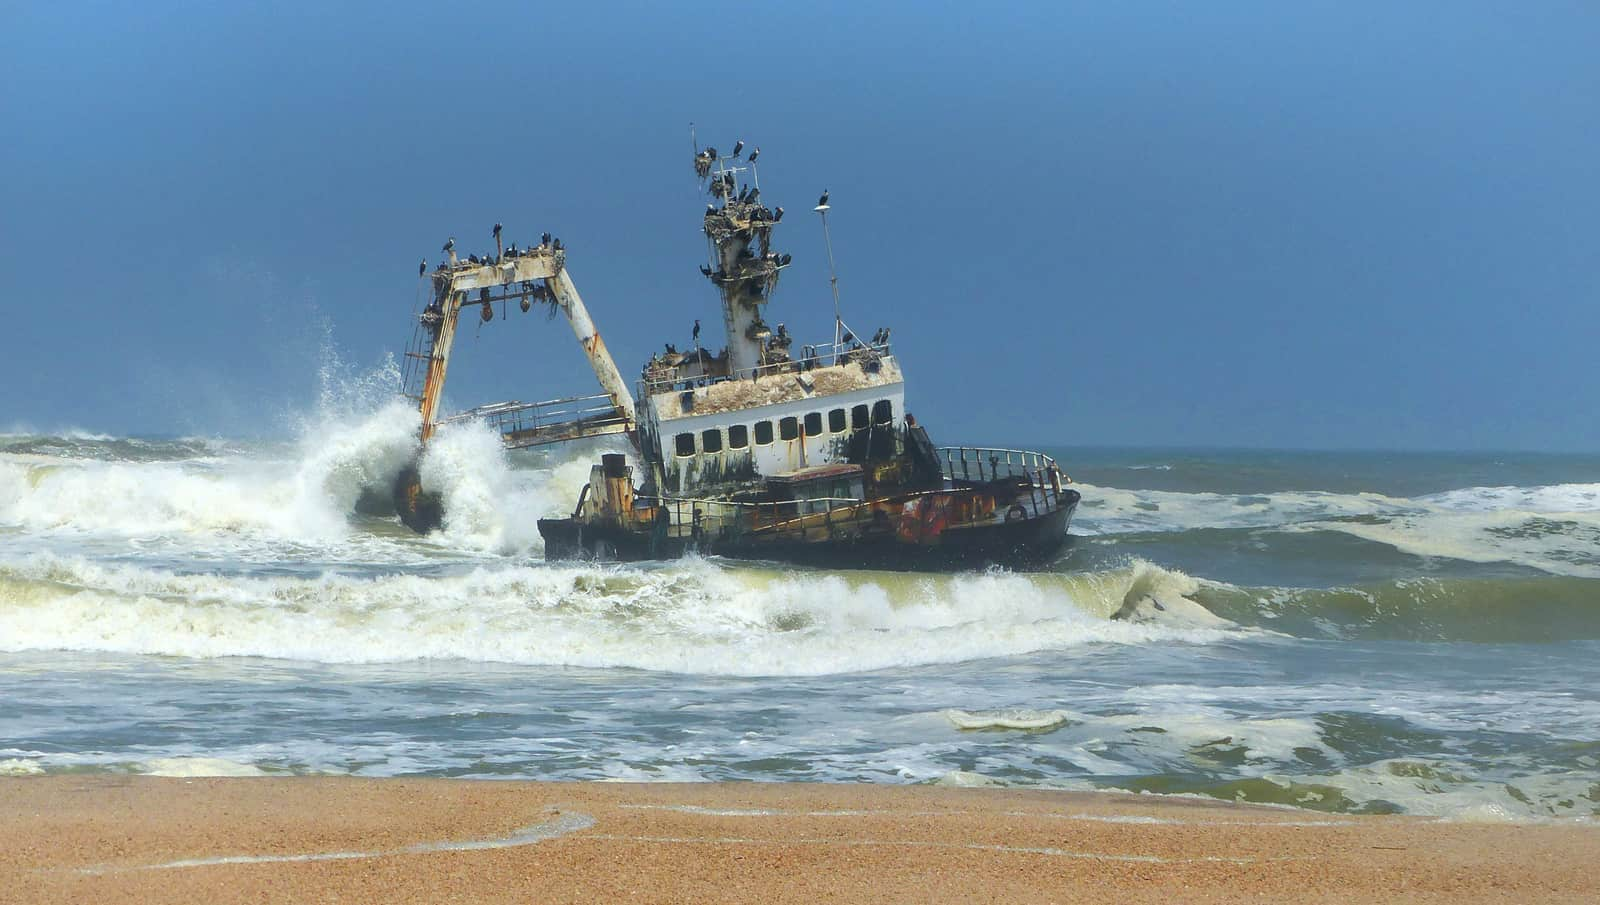 Zeila Shipwreck on the Skeleton Coast